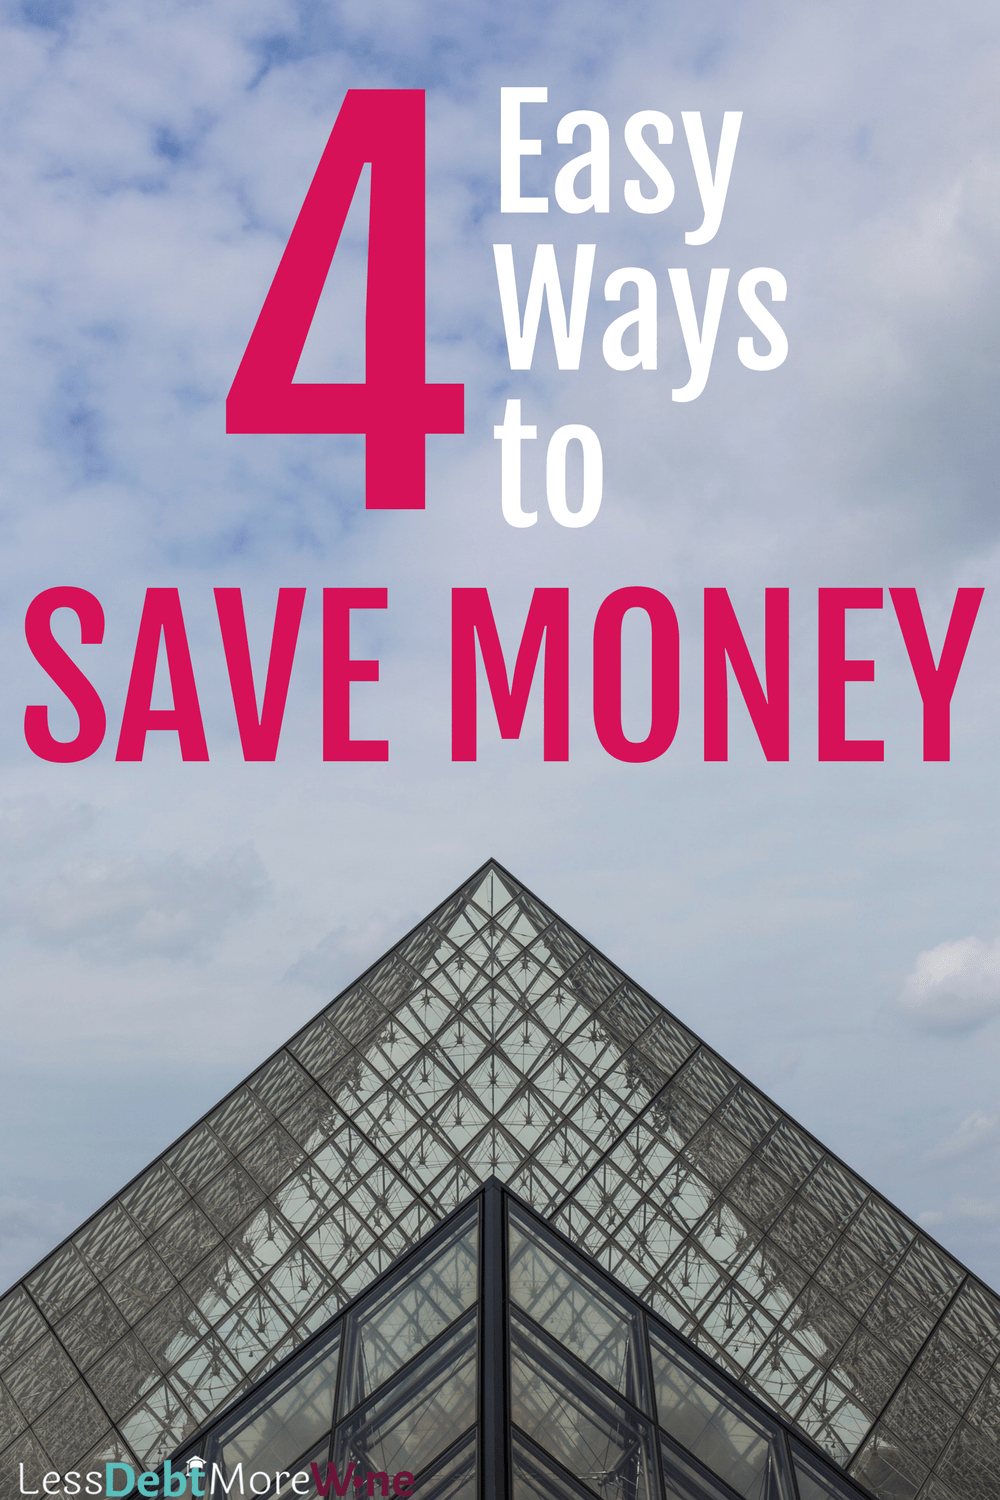 save money | frugal living | how to easily save money | easy ways to save money